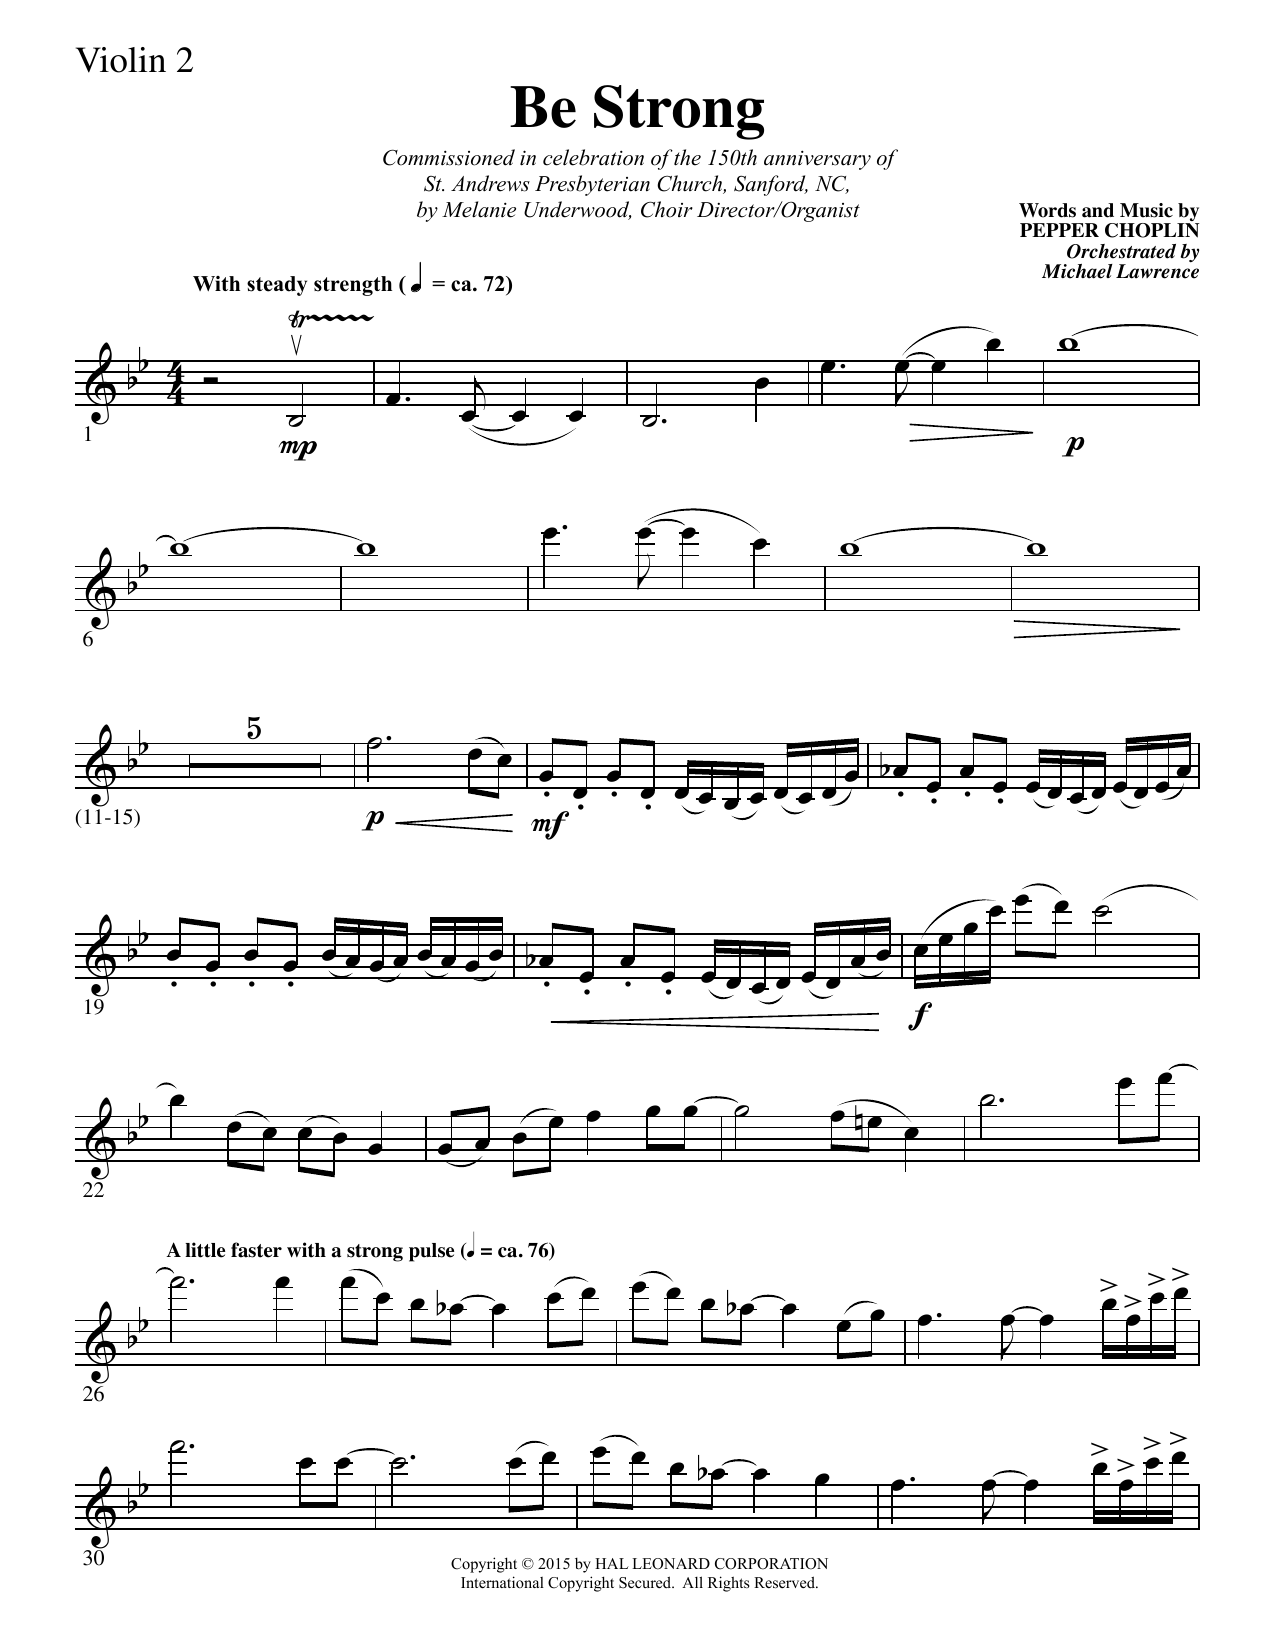 Pepper Choplin Be Strong - Violin 2 sheet music notes and chords. Download Printable PDF.